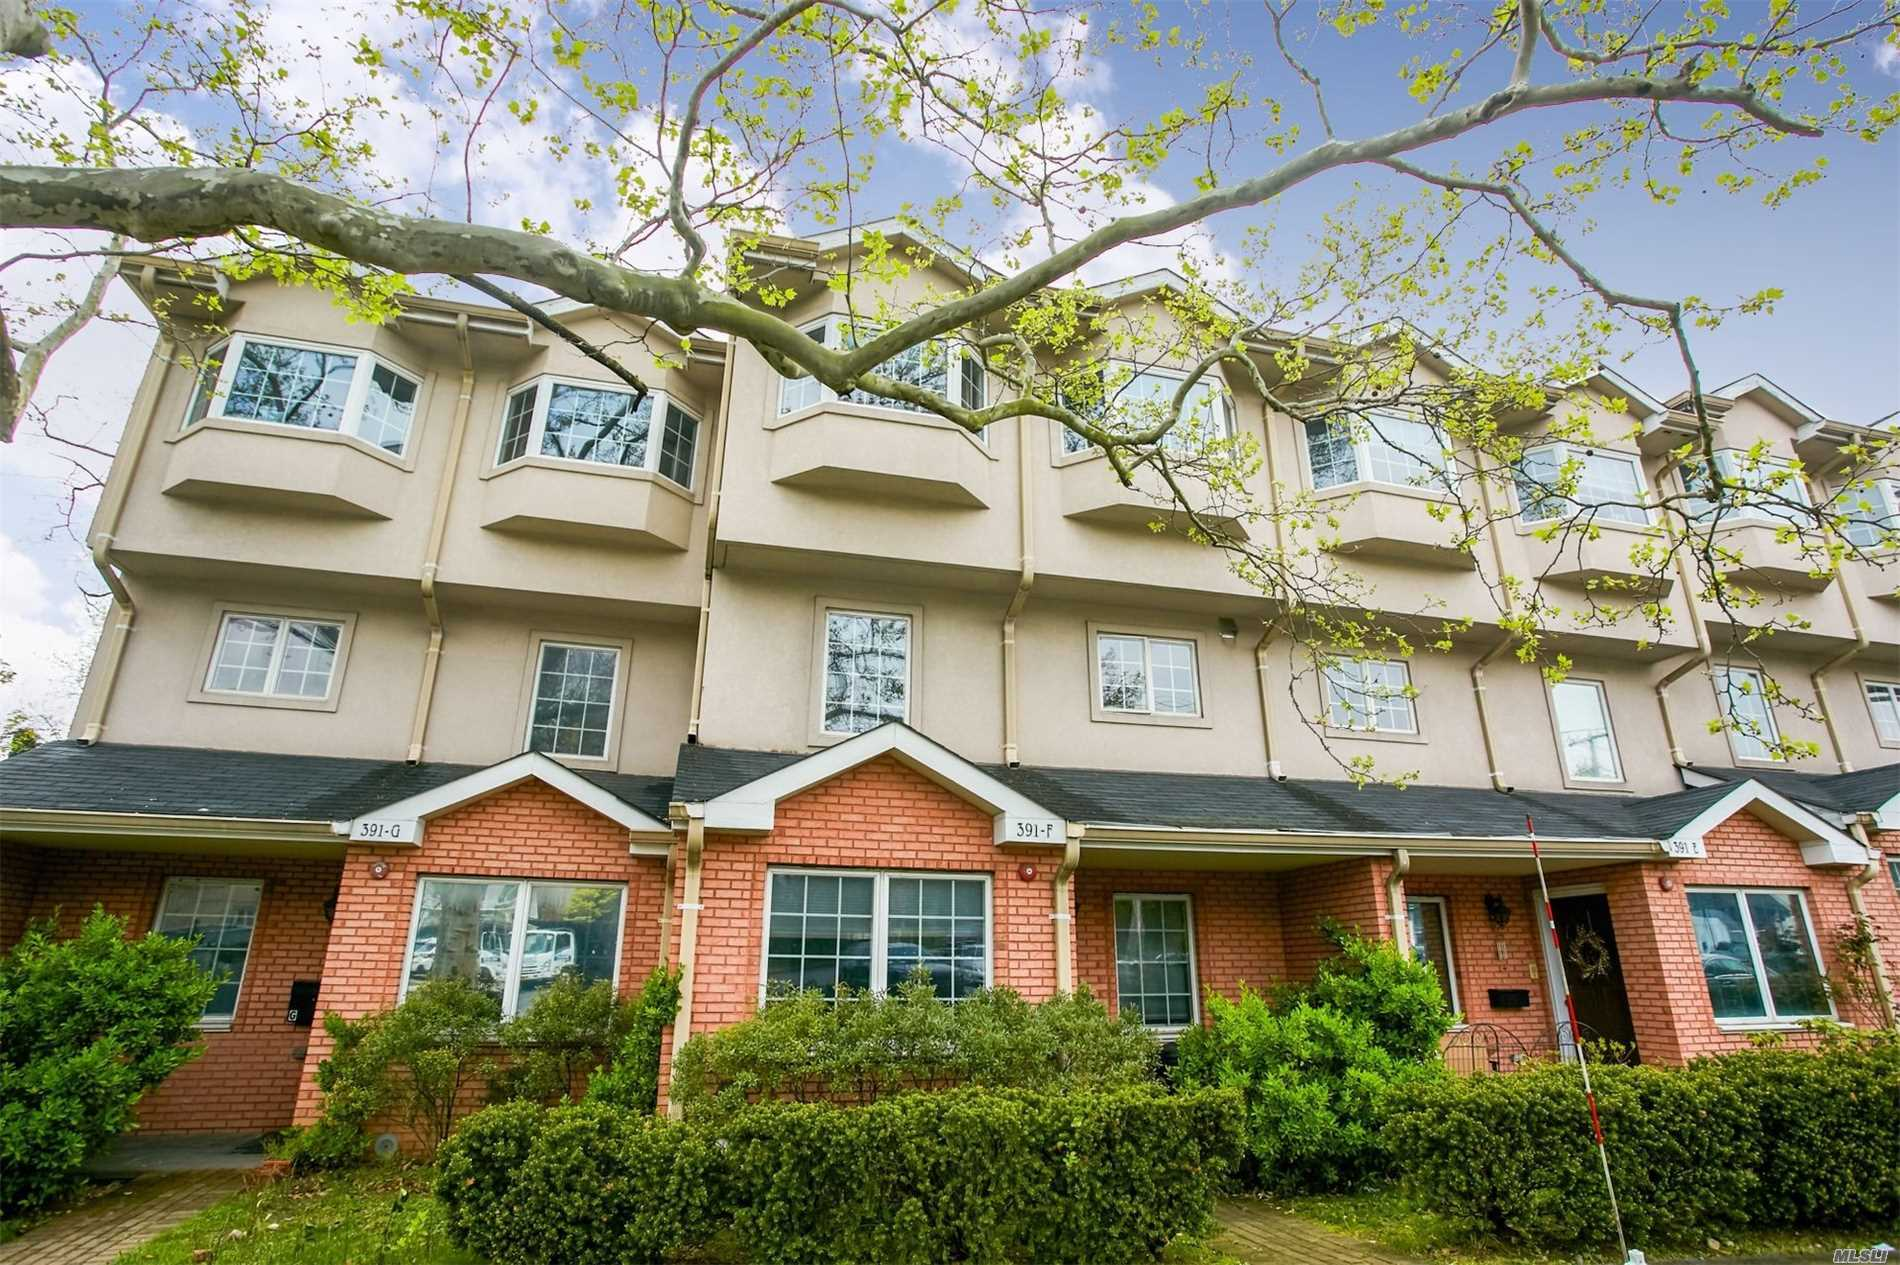 Bright And Spacious Modern 3 Story Young Townhouse. Prime Location In Great Neck. Highly Prized School District. Skylight. Master Bdrm With Balcony And Walk In Closet, Hardwood Floors, Large Closets, Central A/C And Heating Systems, Finished Basement, Att Garage And Driveway, Near H-Mart, Shopping Centers, And Lirr. Enjoy Great Neck Park District Facility.